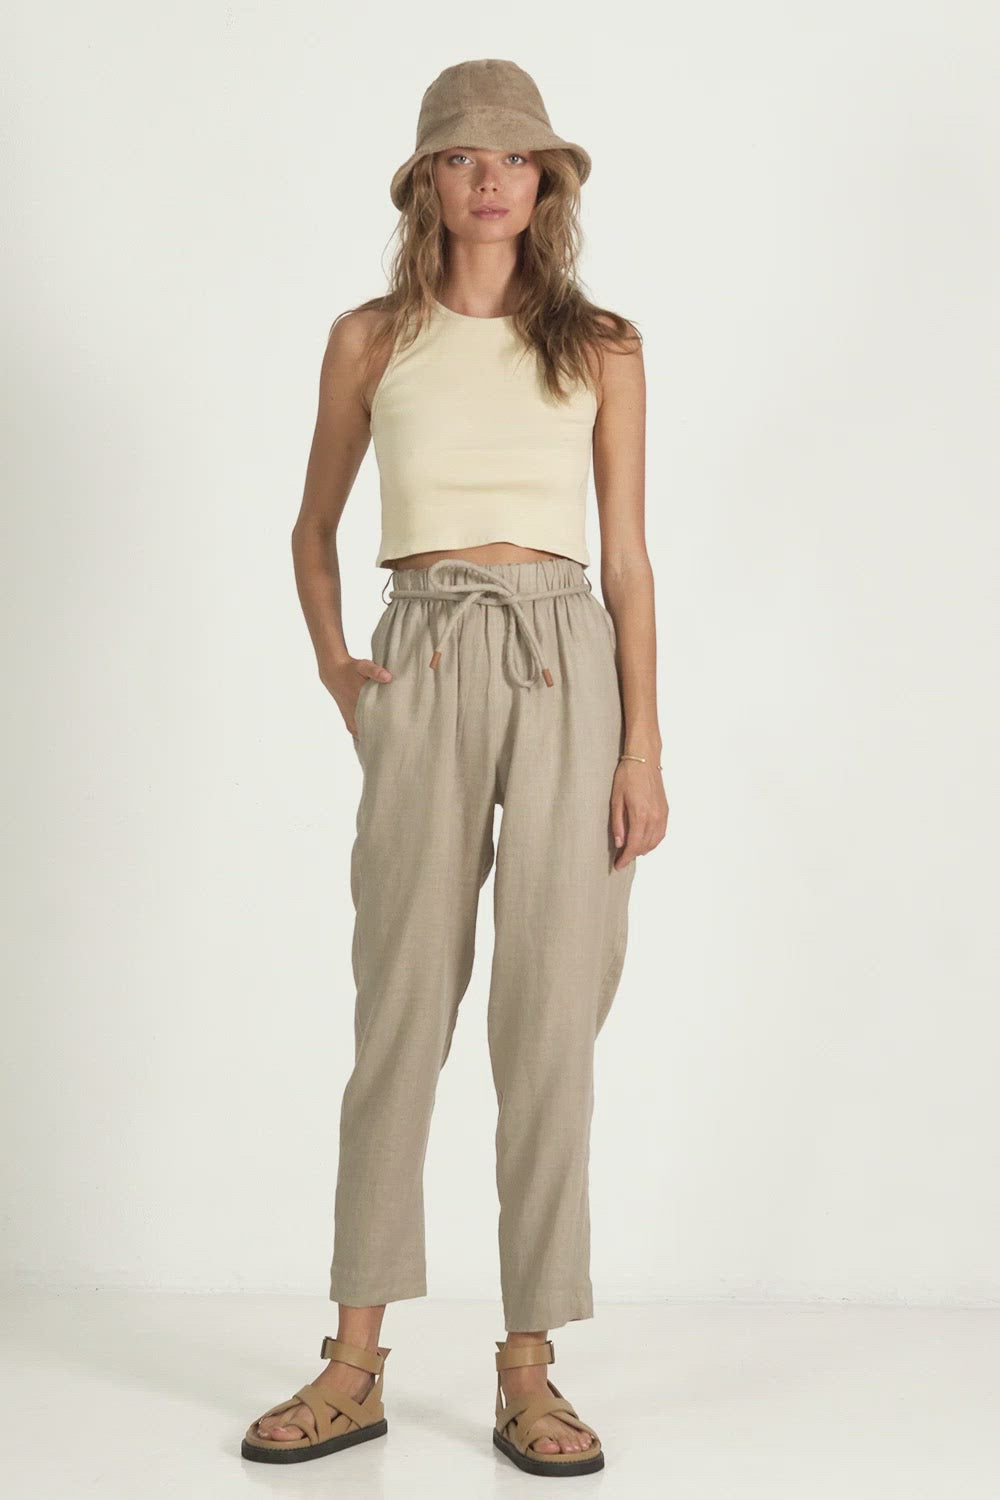 A woman in plain high waisted linen pants for summer by Lilya